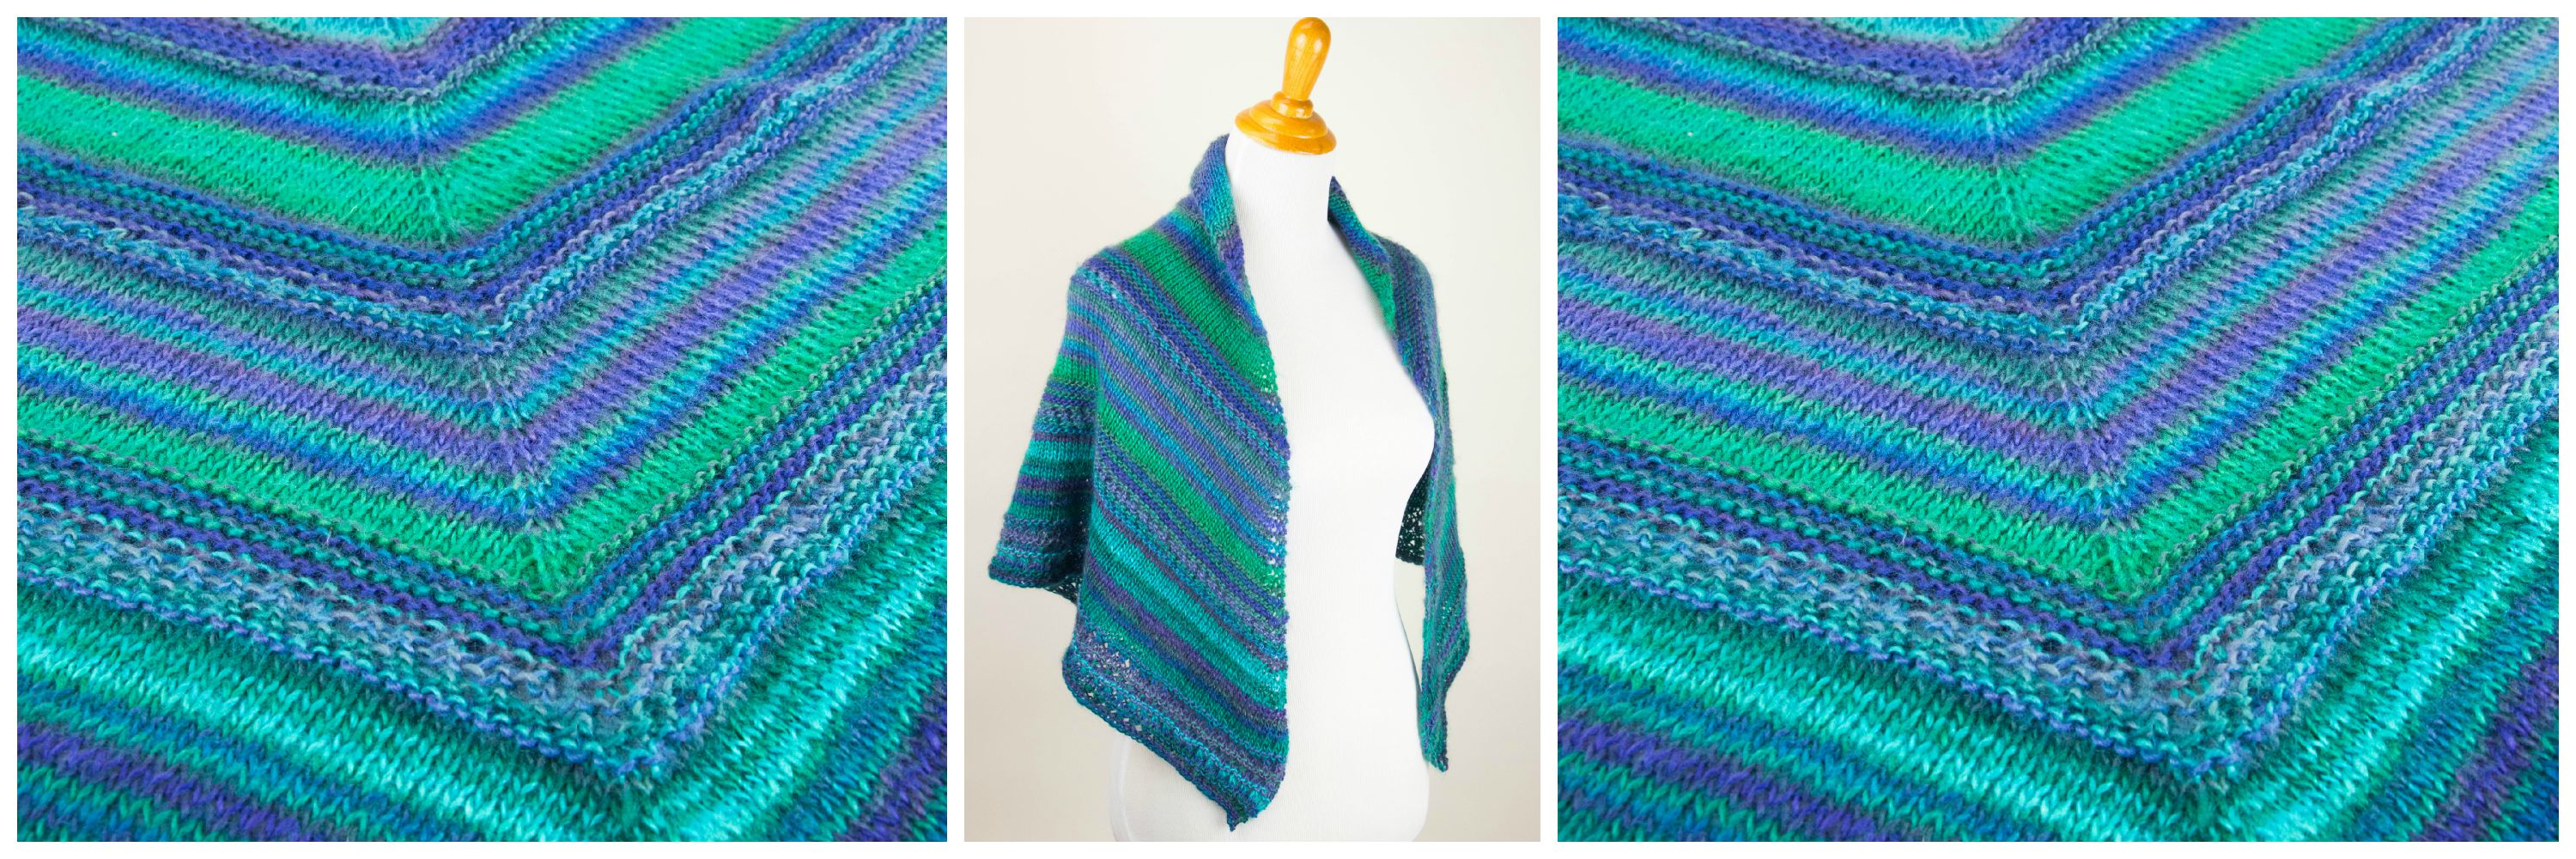 Prayer Shawl Patterns Knitting Free : Printable Pattern: Free Knit Prayer Shawl Pattern - Stitch ...